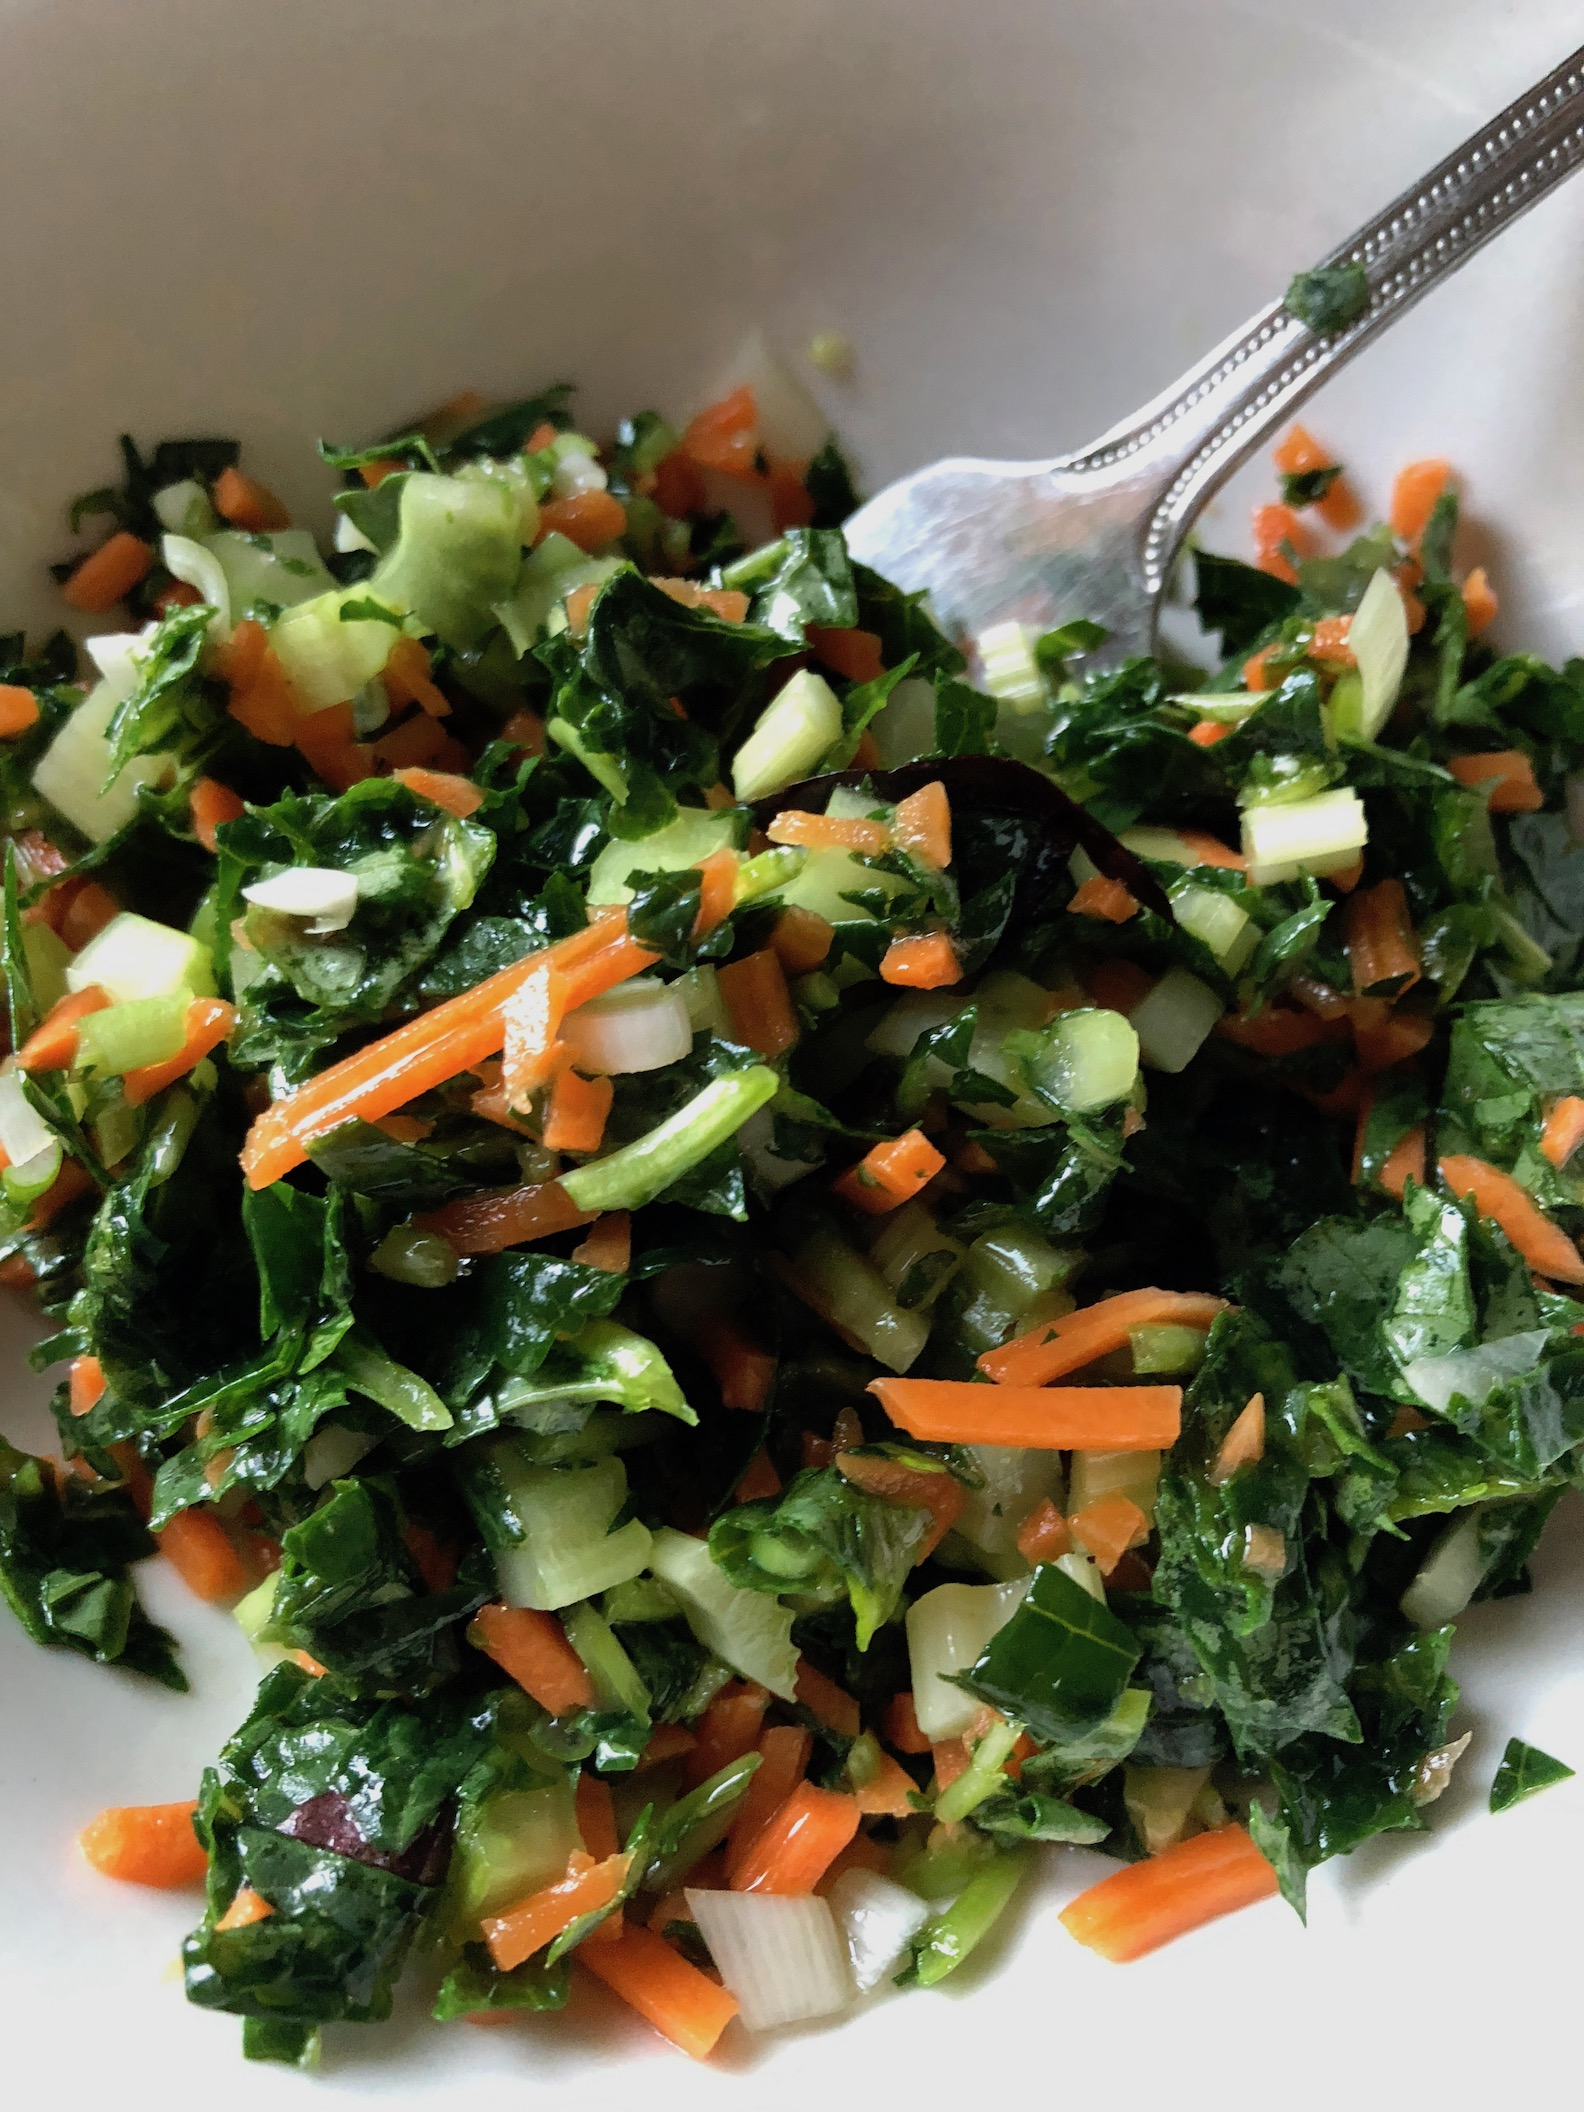 Crunchy Kale and Shredded Carrot Salad